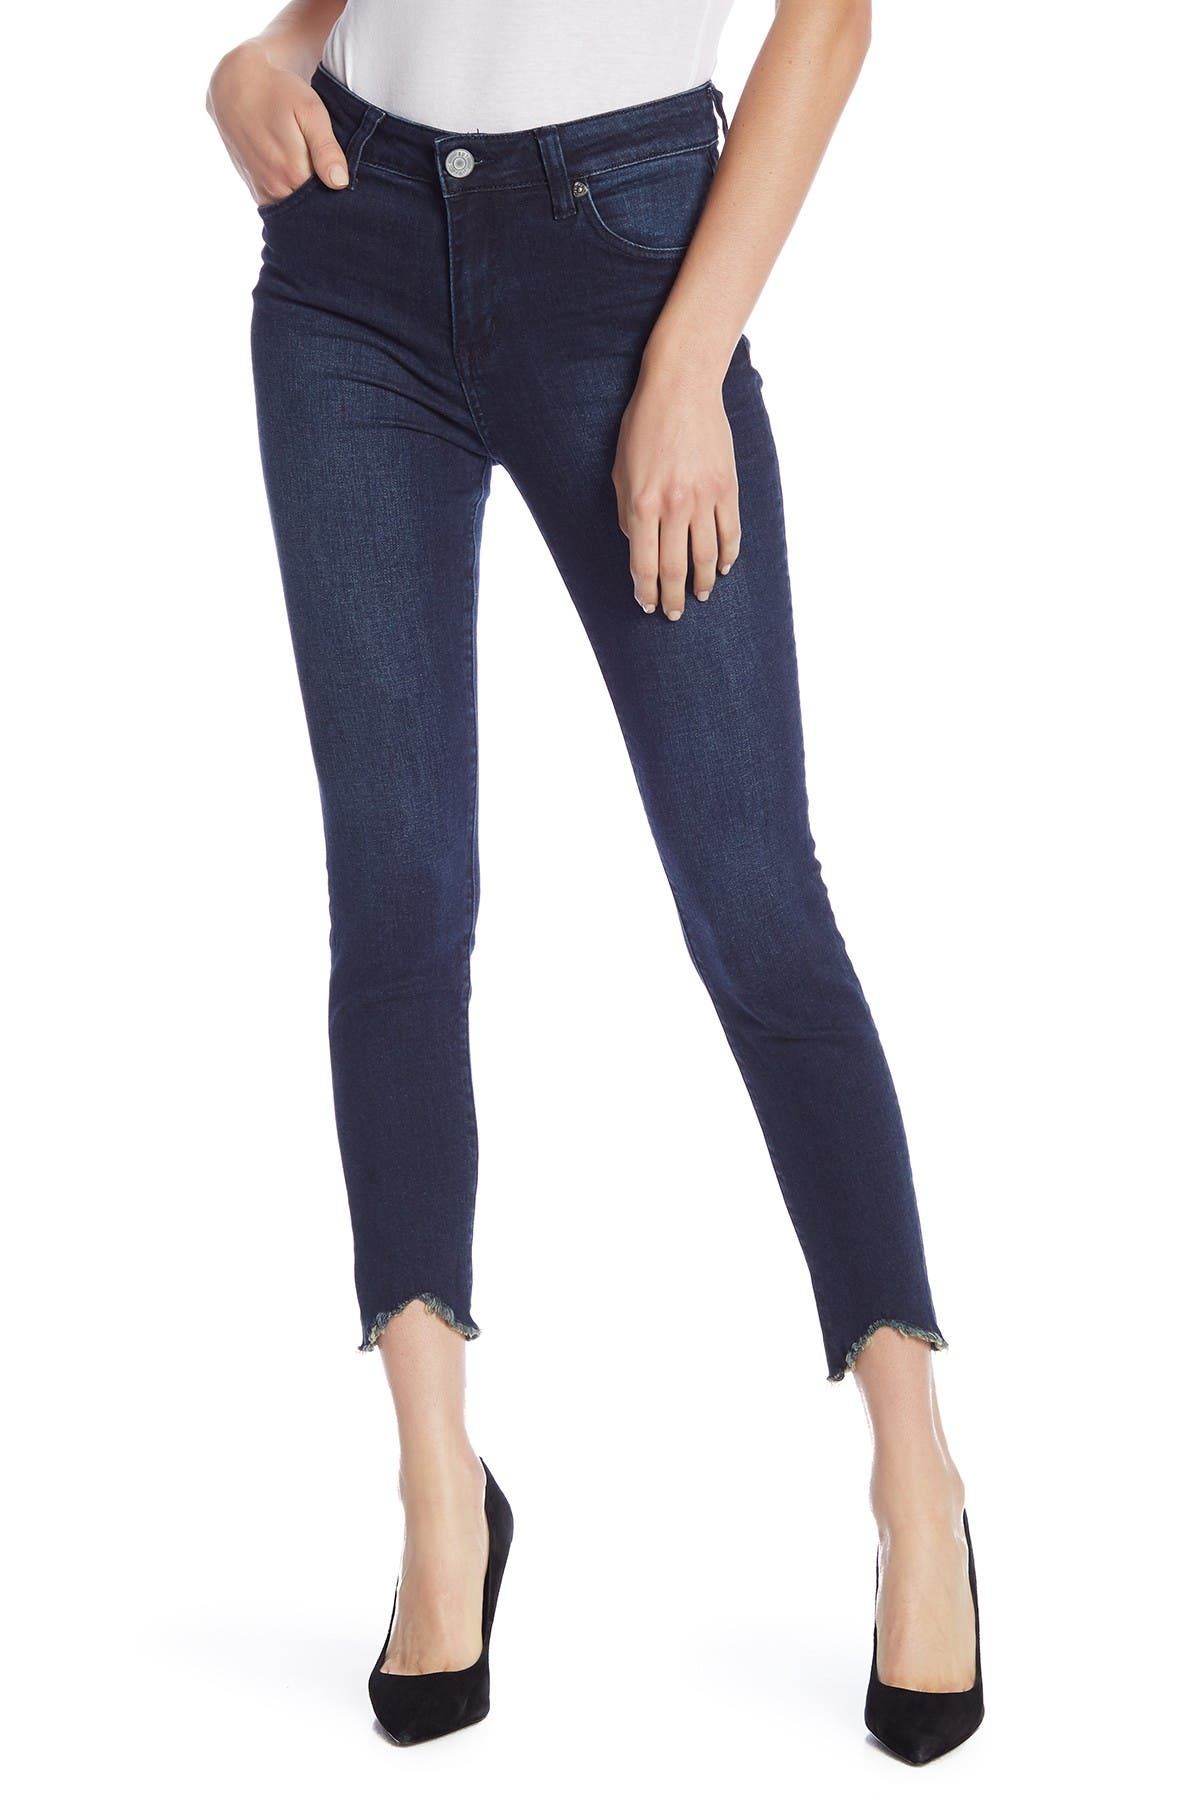 Image of KUT from the Kloth Carlo High Rise Curved Hem Skinny Jeans